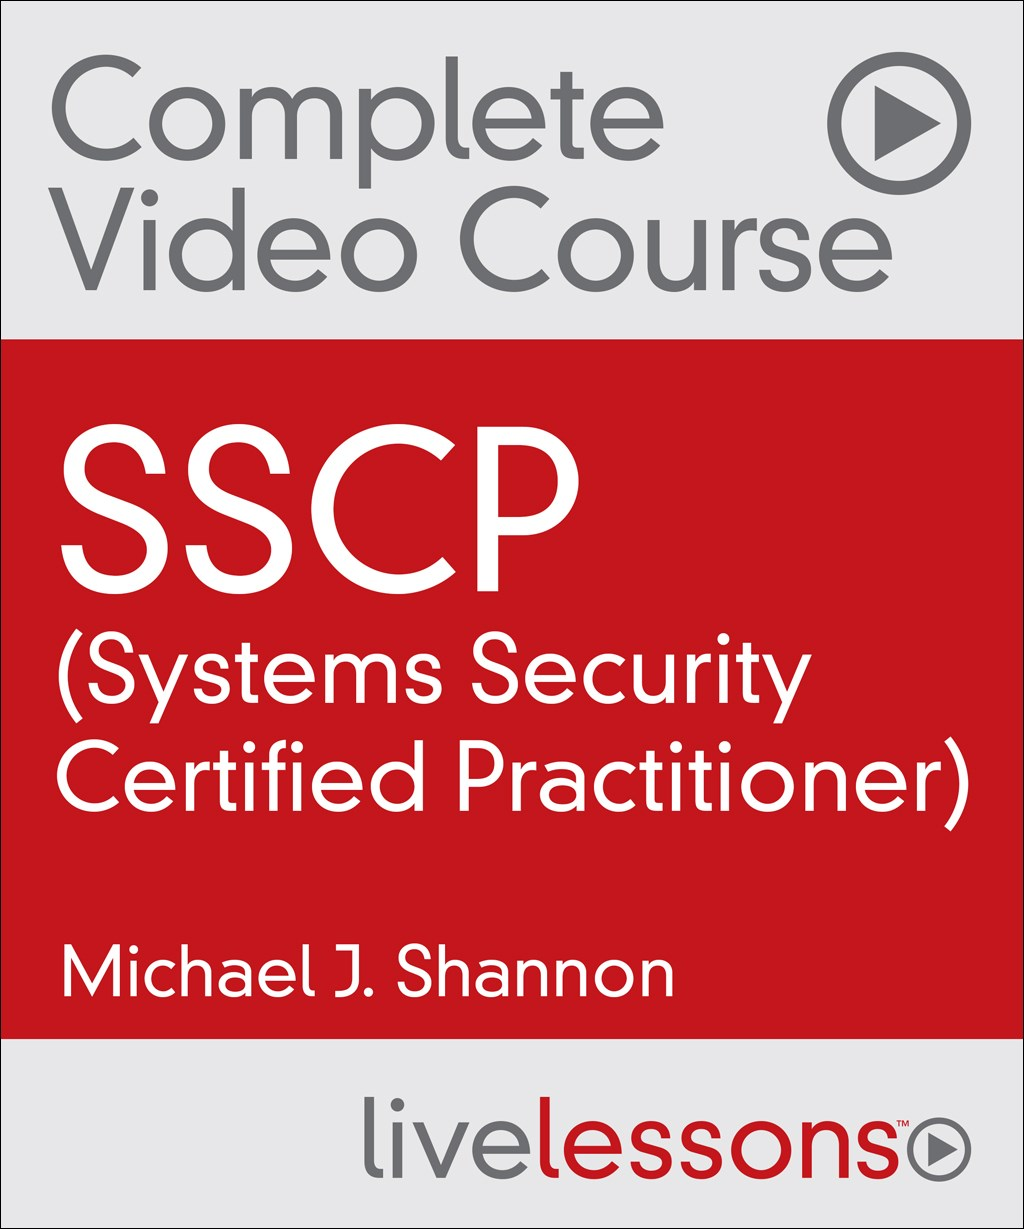 SSCP (Systems Security Certified Practitioner) Complete Video Course and Practice Test